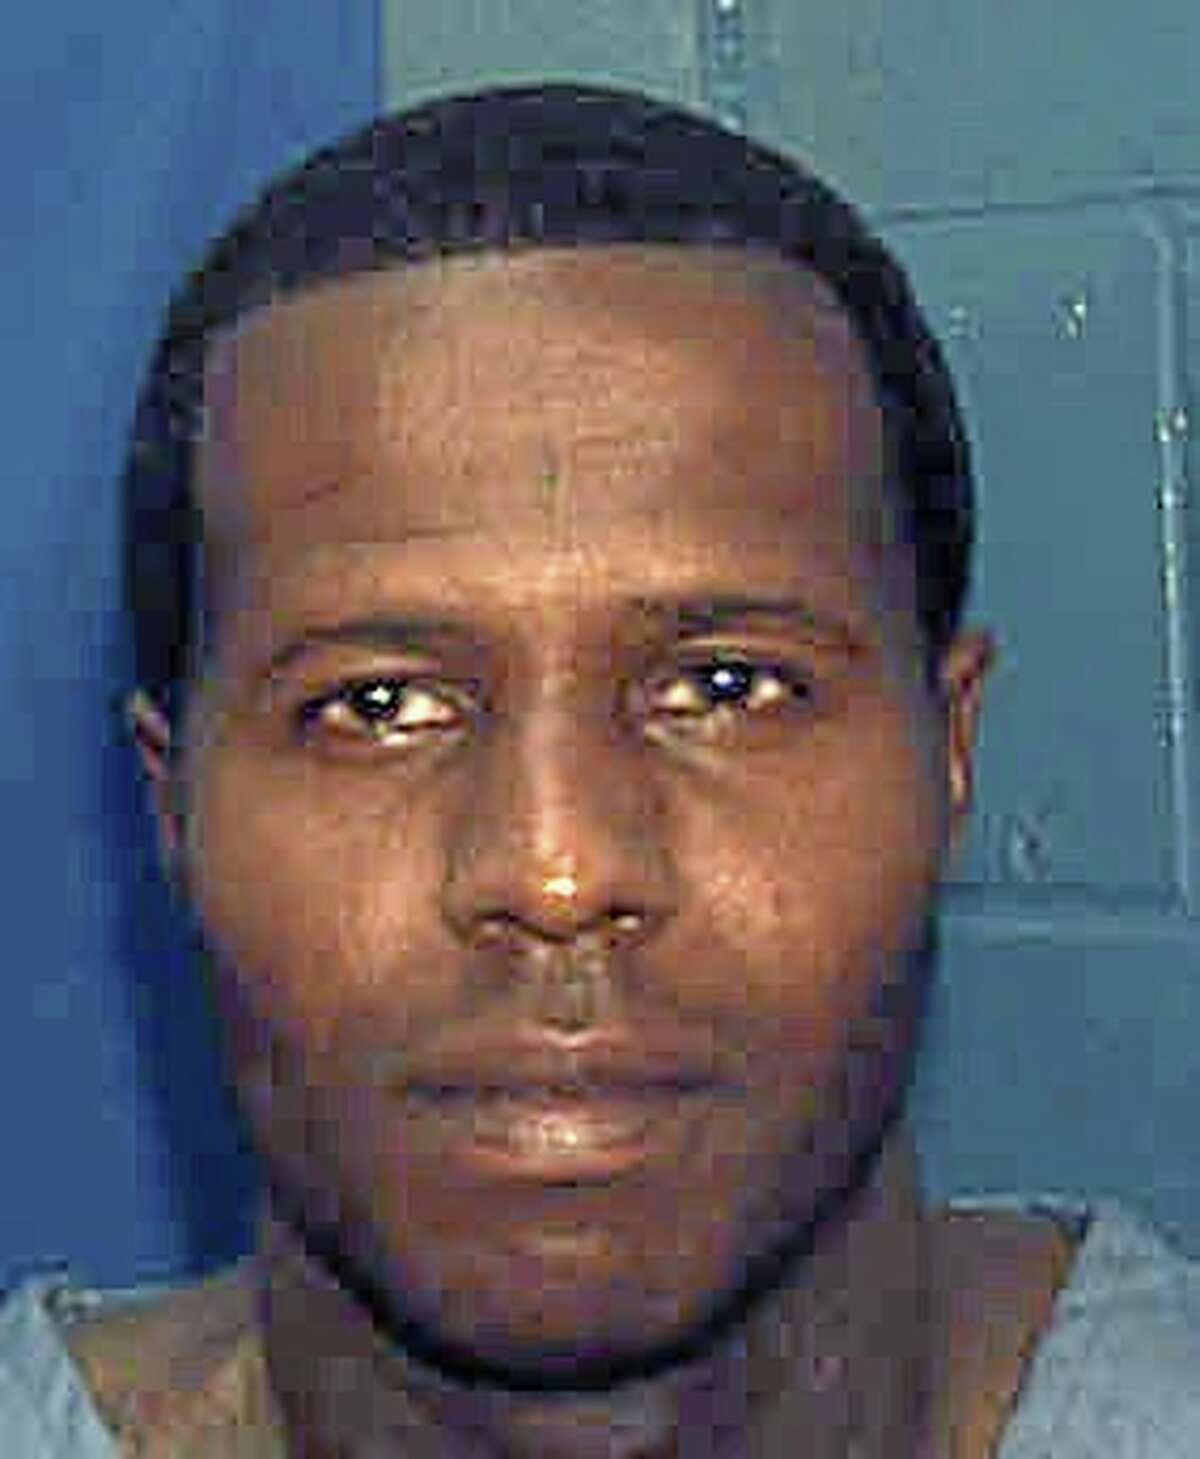 This undated photo made available by the Florida Department of Corrections shows Charles Walker. Walker and Joseph Jenkins were mistakenly released from prison in Franklin County, Fla., in late September and early October. According to authorities, the the two convicted murderers were released with forged documents. A manhunt is under way for the two men. (AP Photo/Florida Dept. of Corrections,HO)